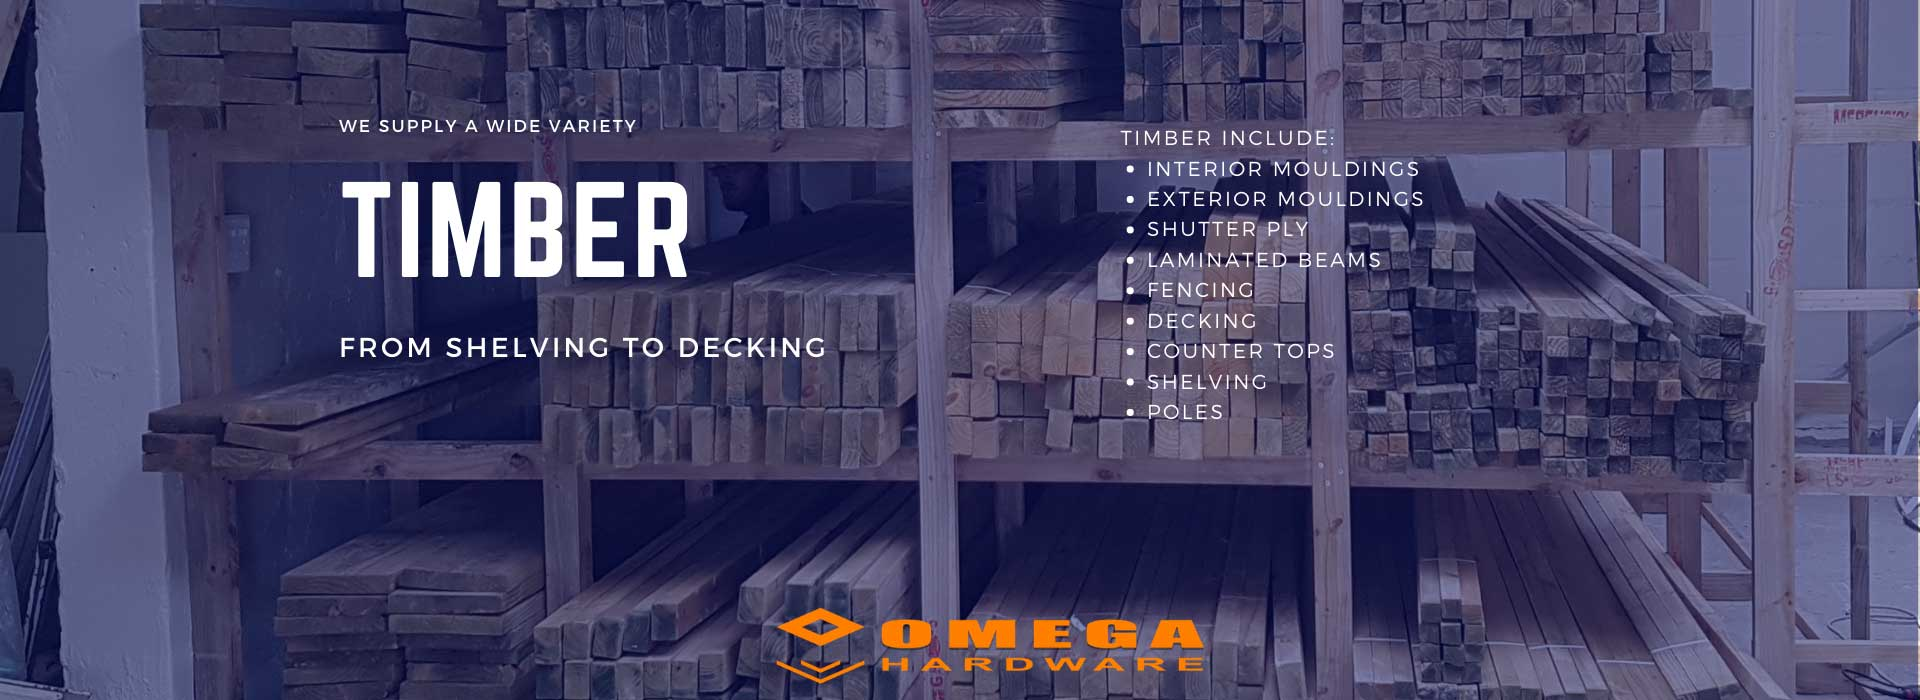 building material, building timber, untreated wood, treated wood, Omega Gansbaai, Omega Hardware